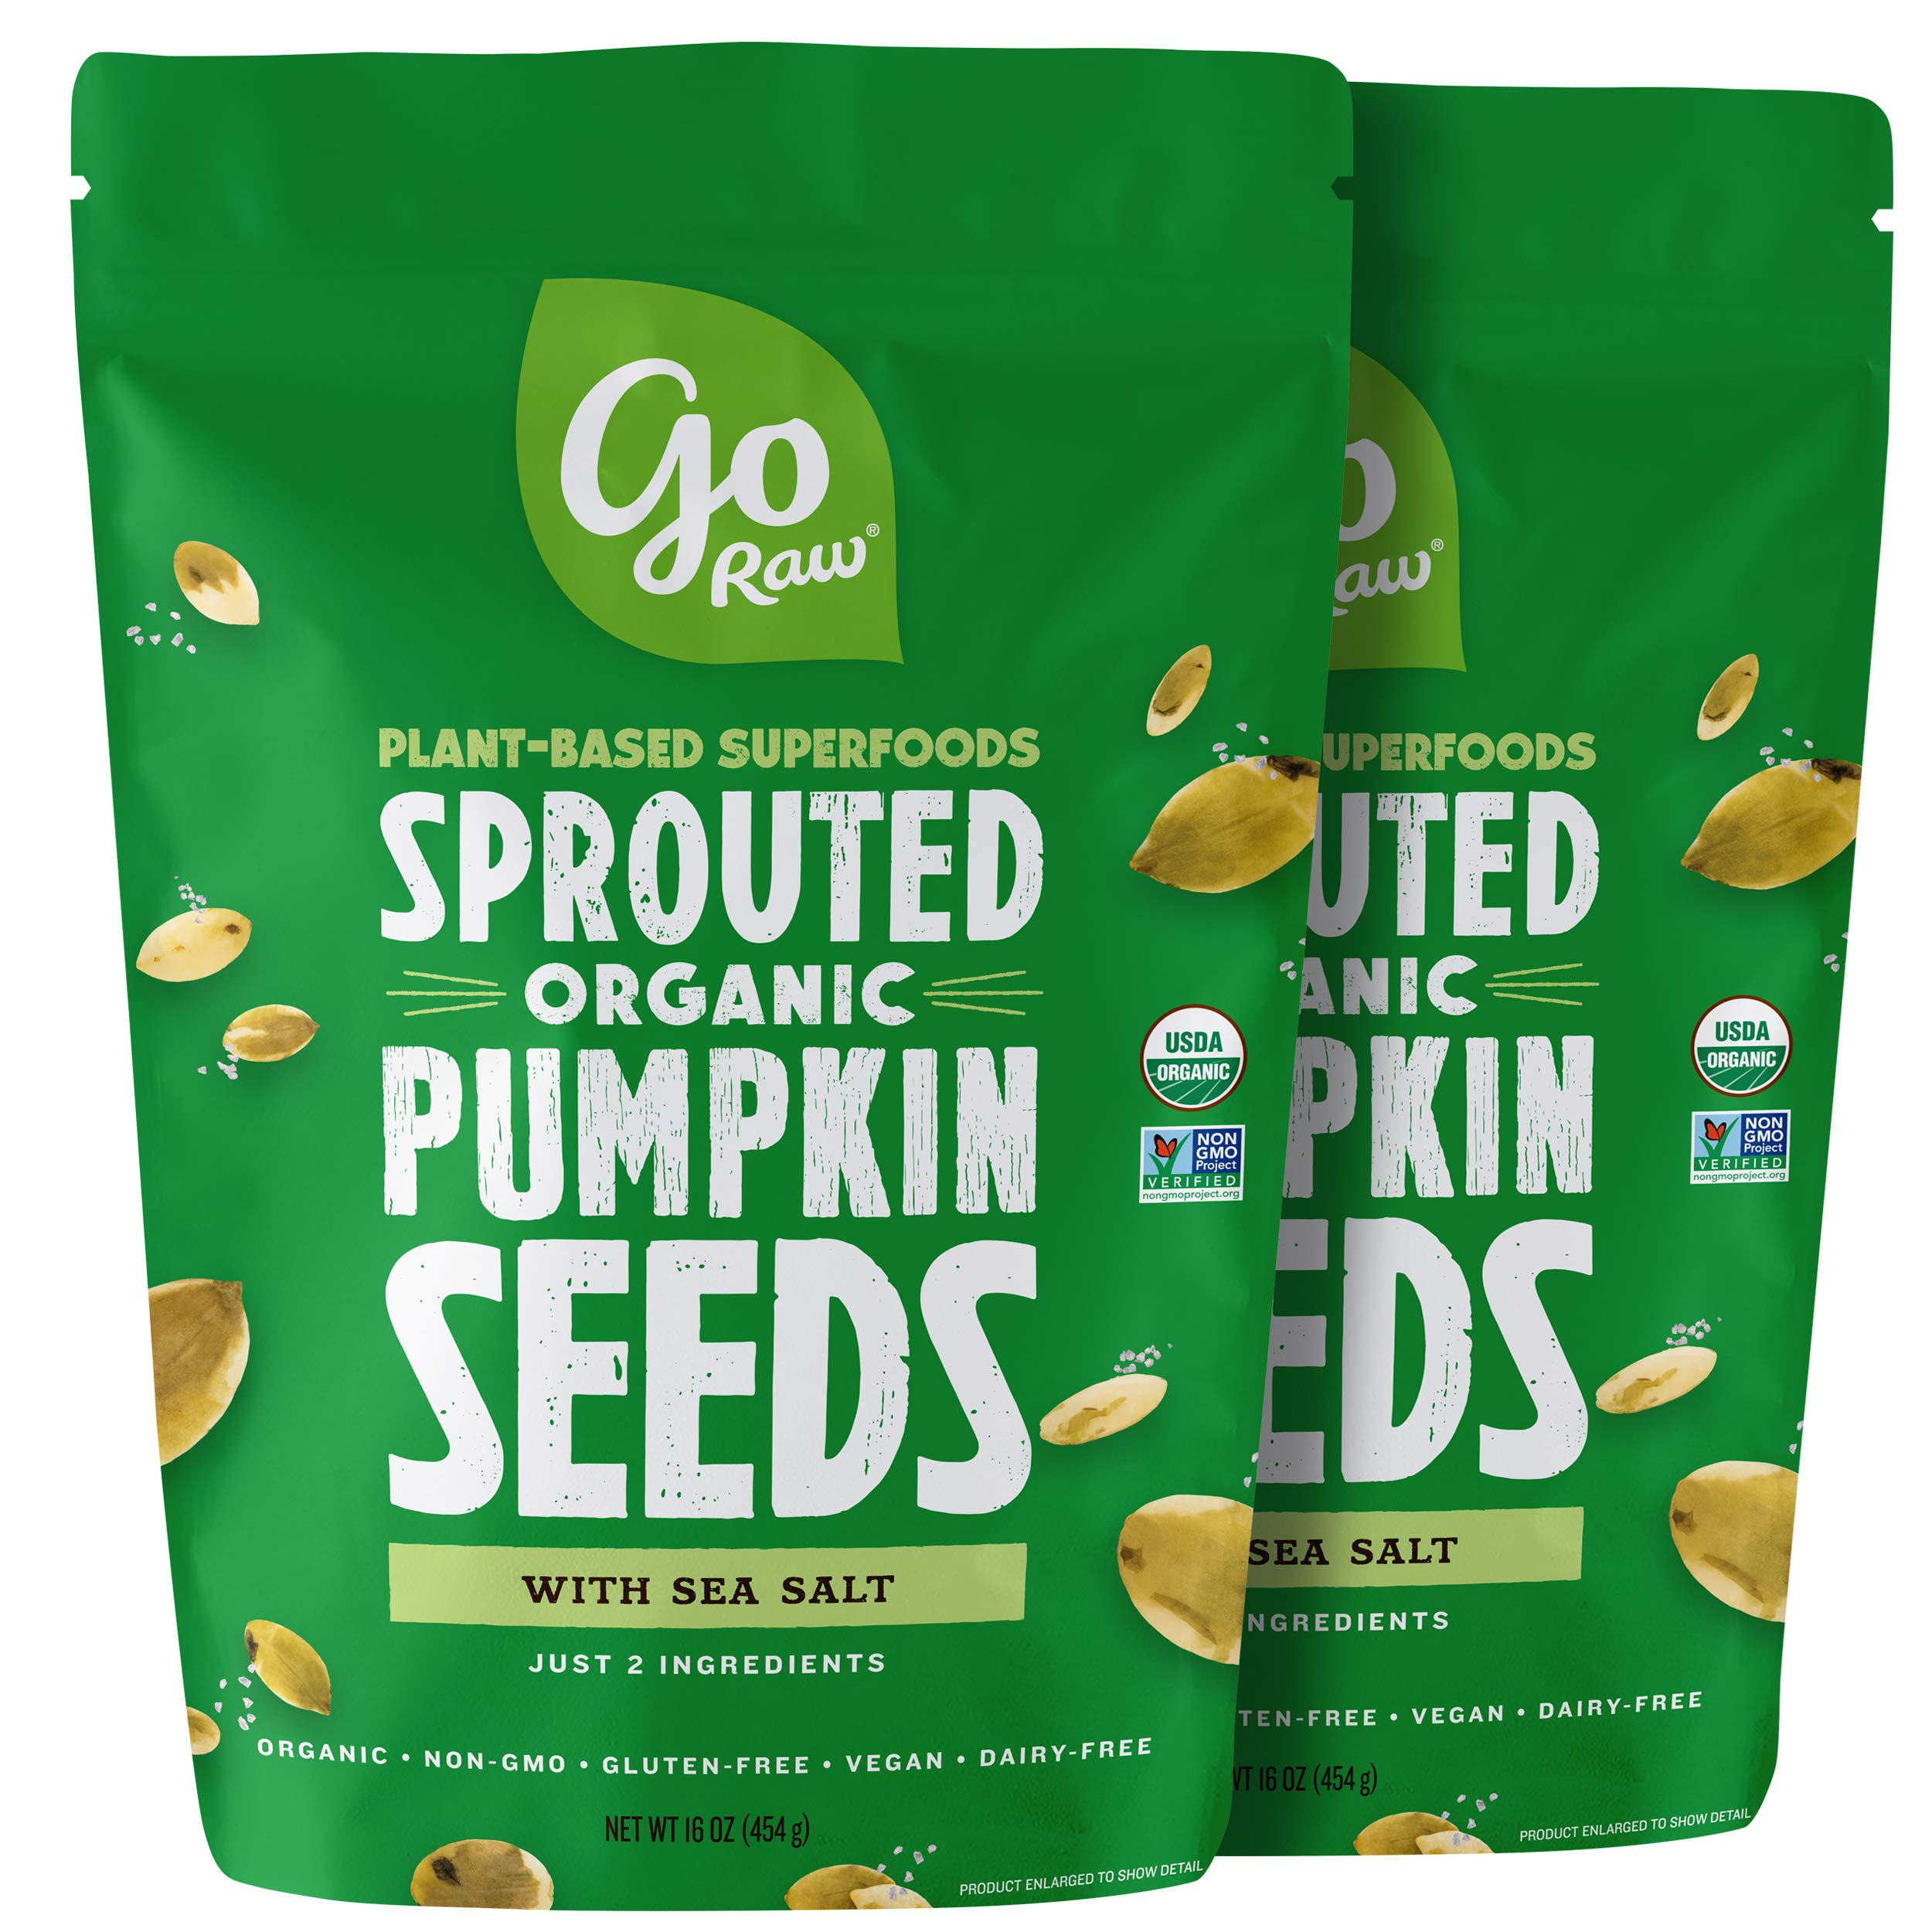 Go Raw Sprouted Pumpkin Seeds, Pack of 2 Bags | Keto | Vegan | Gluten Free Snacks| Organic | Superfood by Go Raw (Image #1)